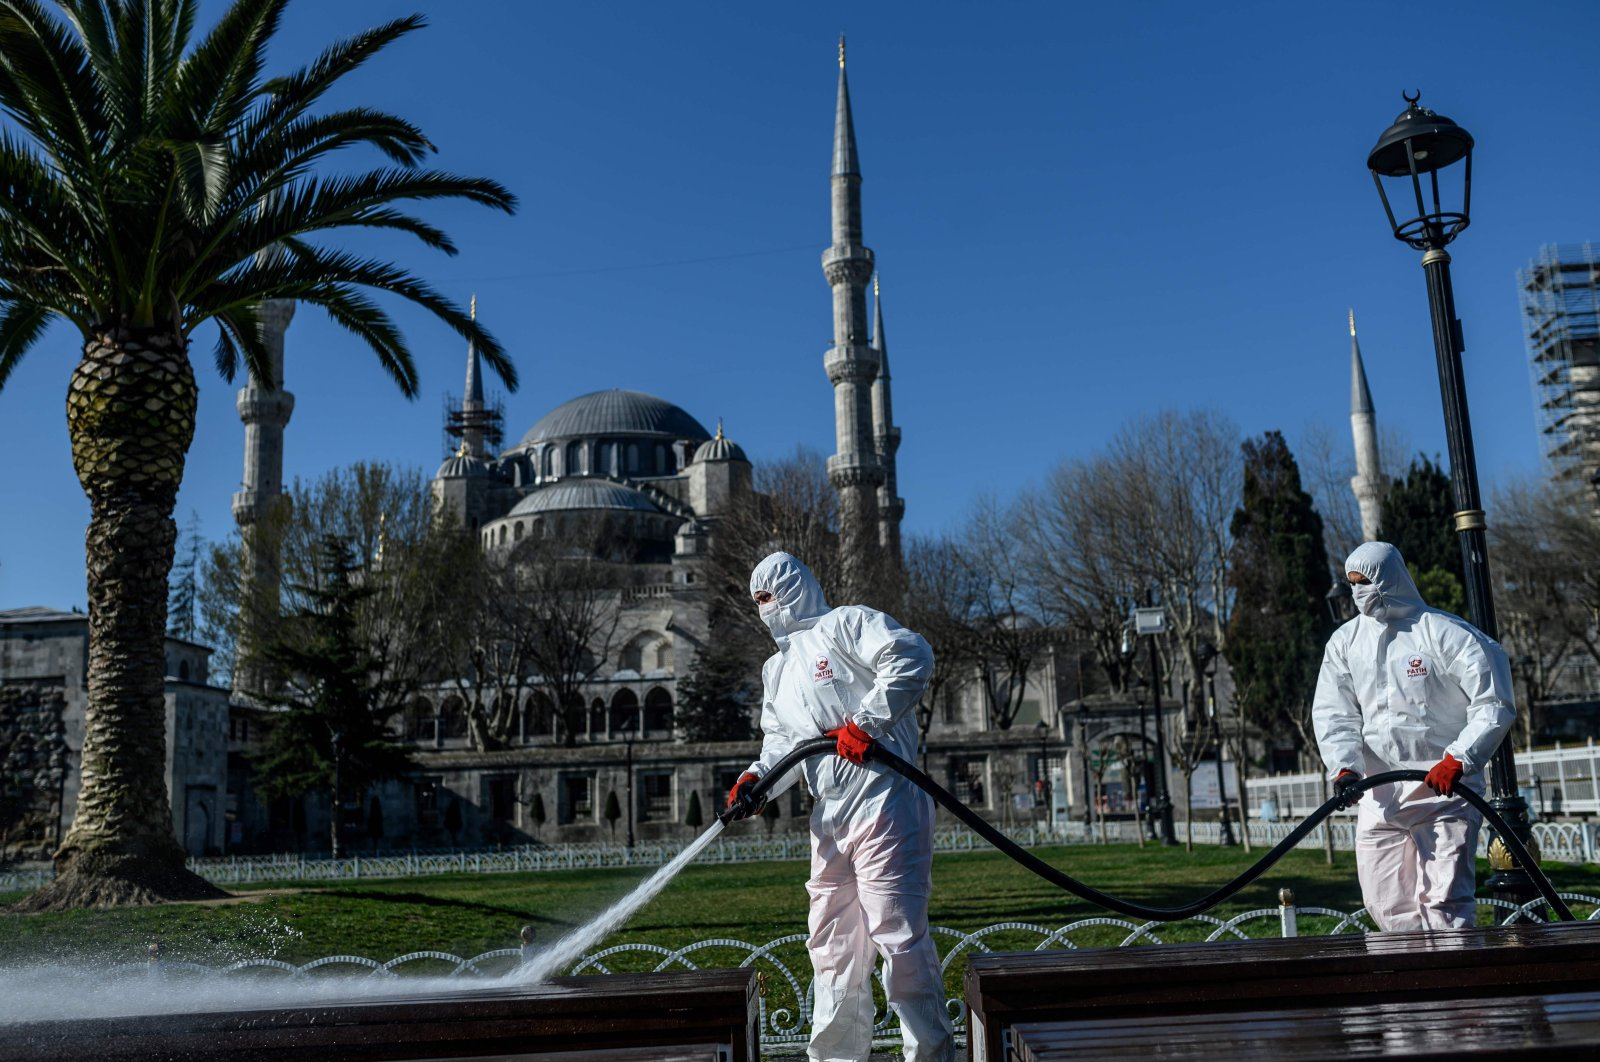 Members of the Fatih Municipality disinfect Istanbul's Sultanahmet Square with the Blue Mosque in the background to prevent the spread of the coronavirus, March 21, 2020. (AFP Photo)